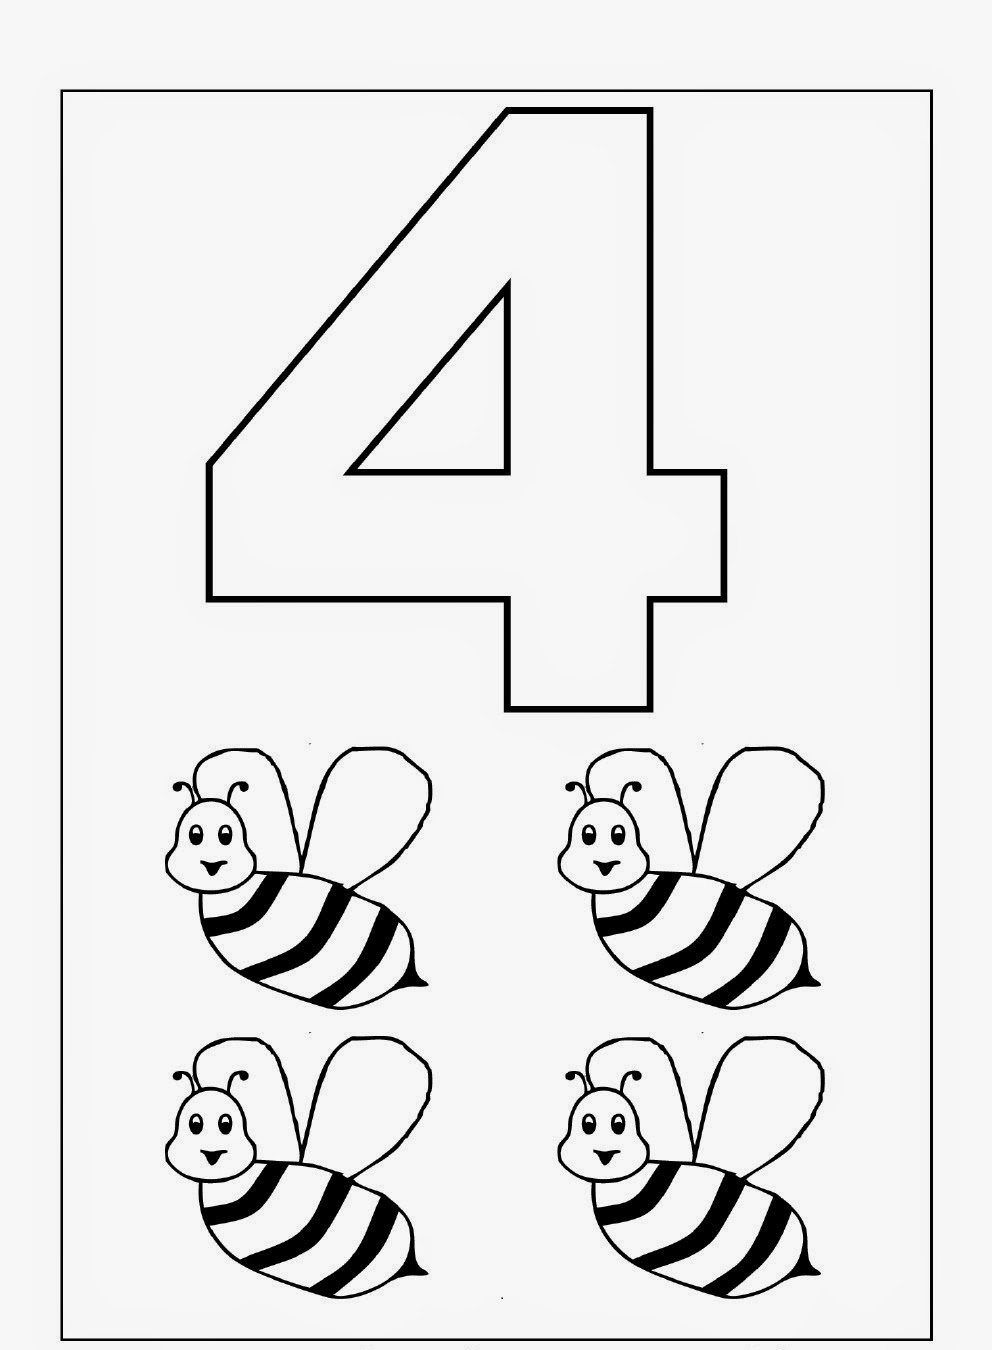 Kindergarten Worksheets: Coloring Worksheets - Maths 1-10